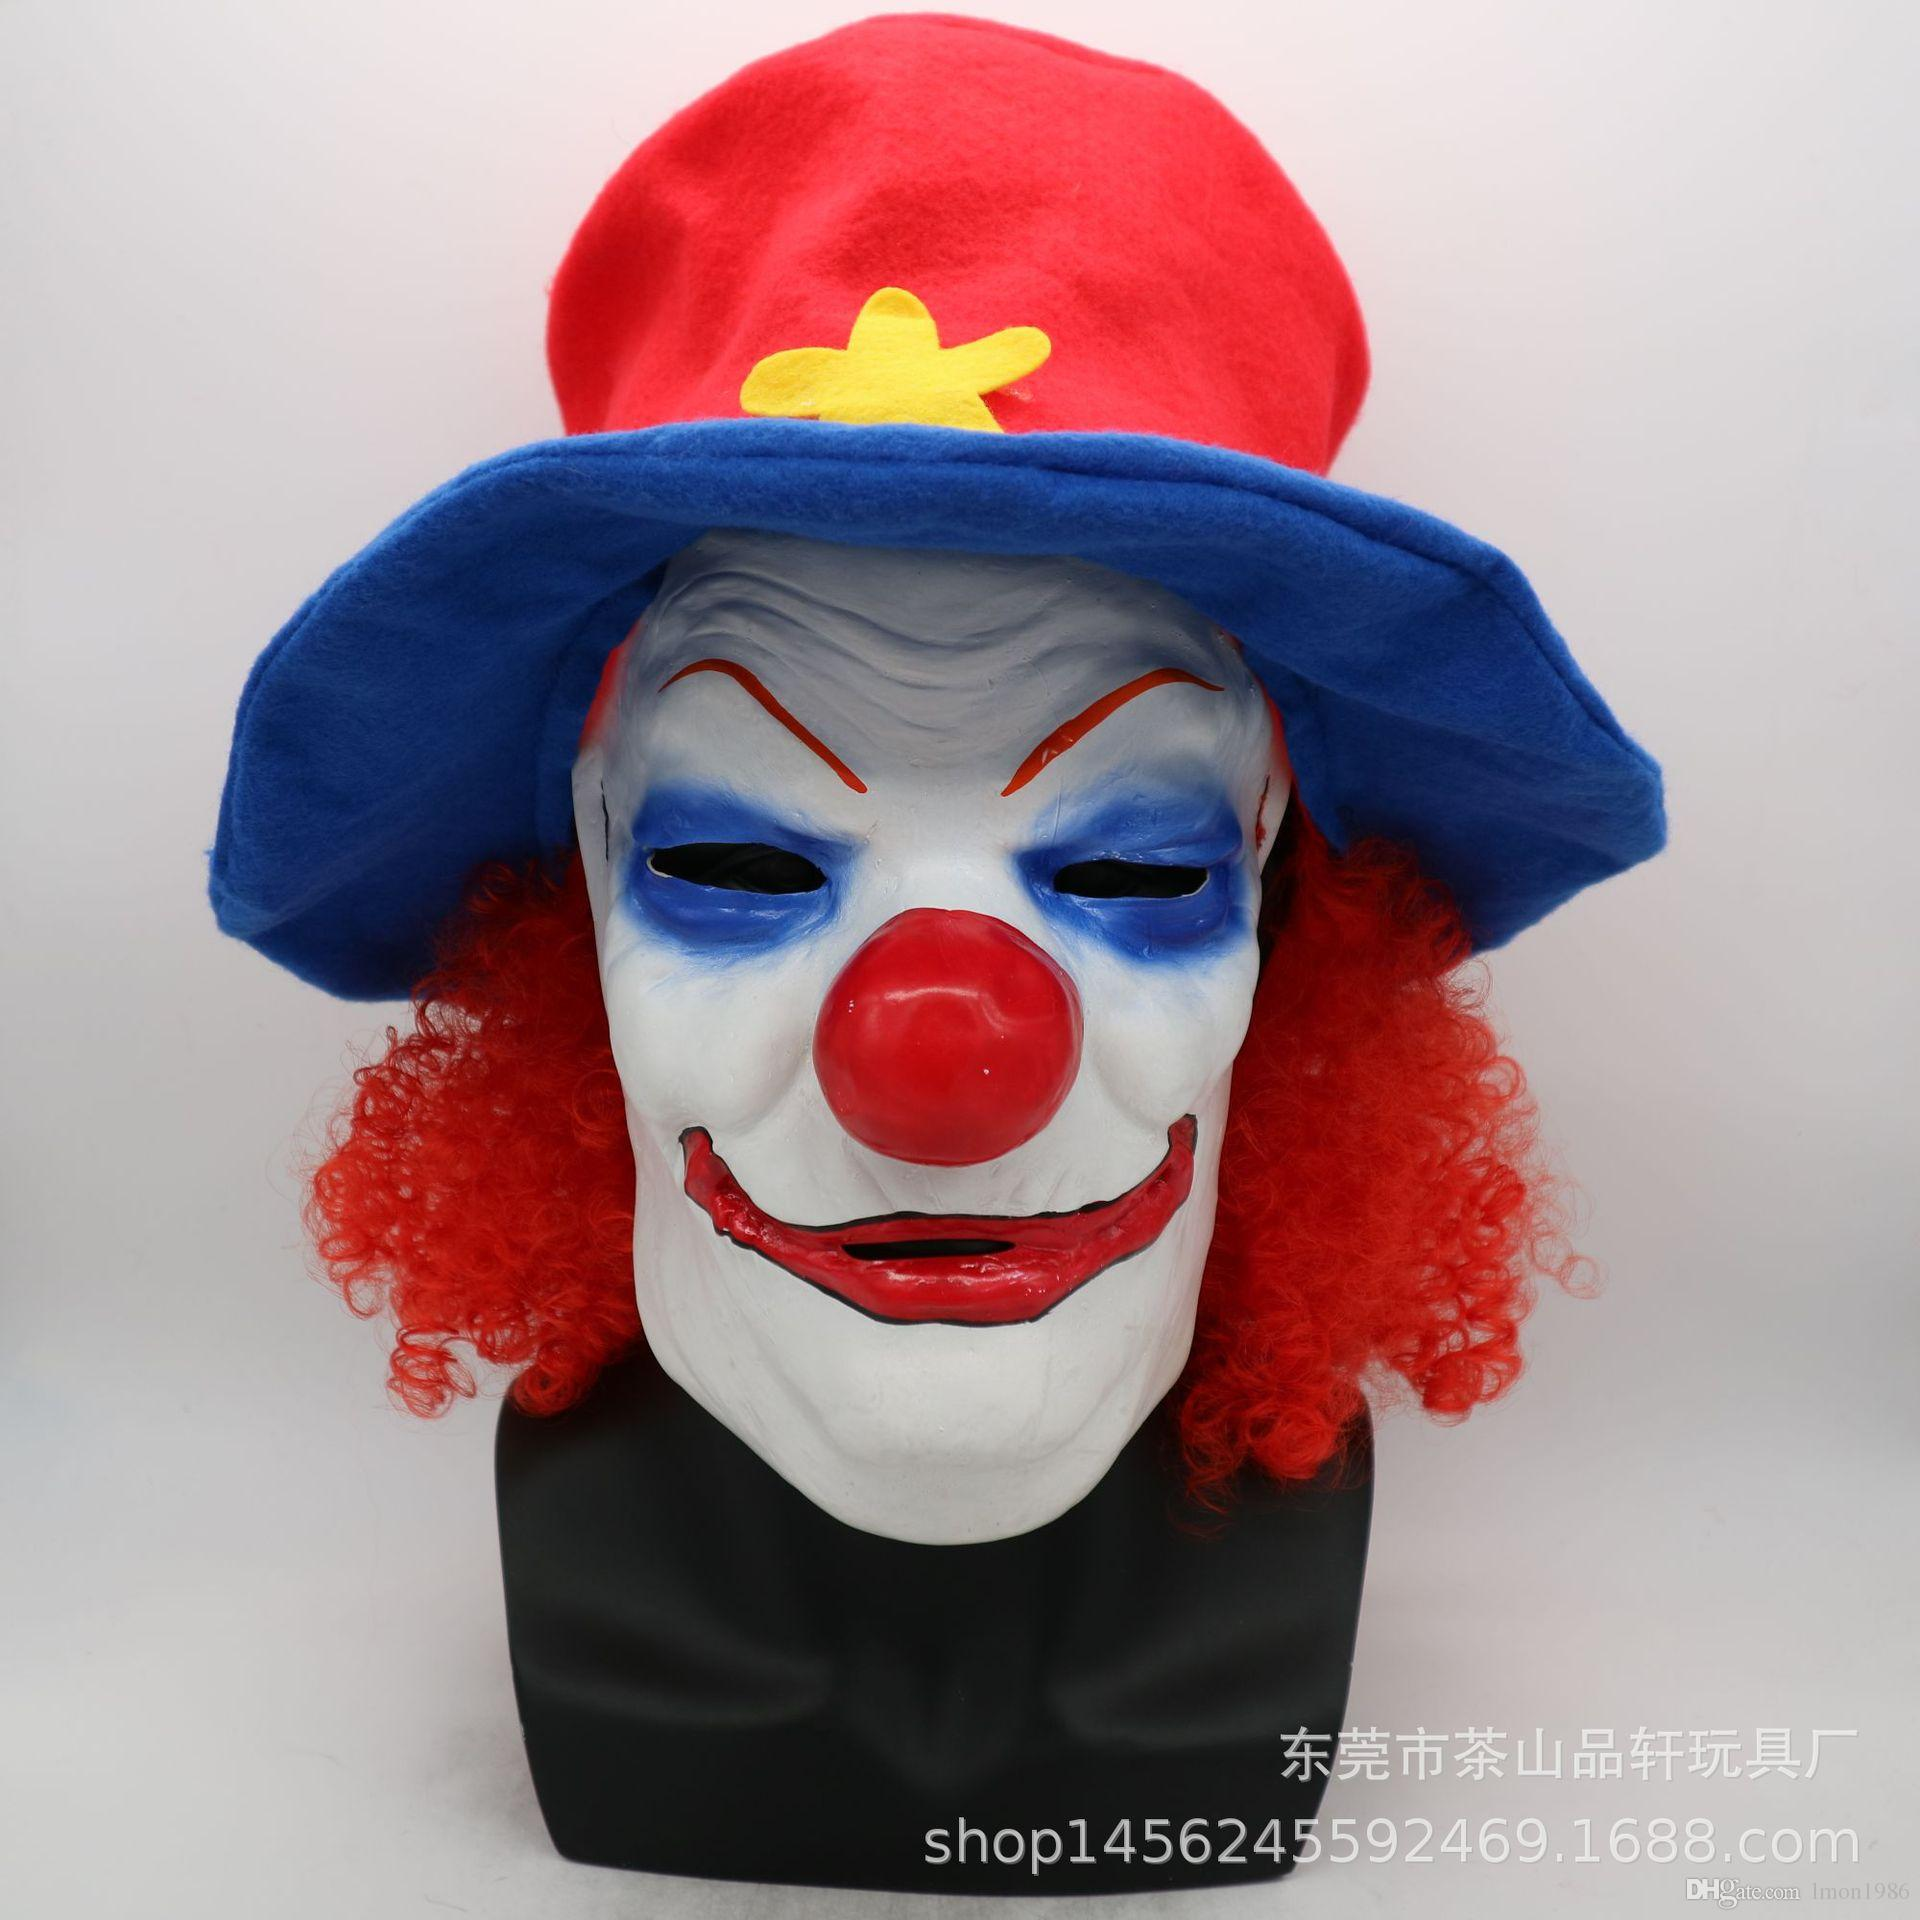 Funny Scary Evil Clown Mask Latex Rubber Mask Halloween Costume Clown Mask With Hair and Hat for Adults Free Shipping